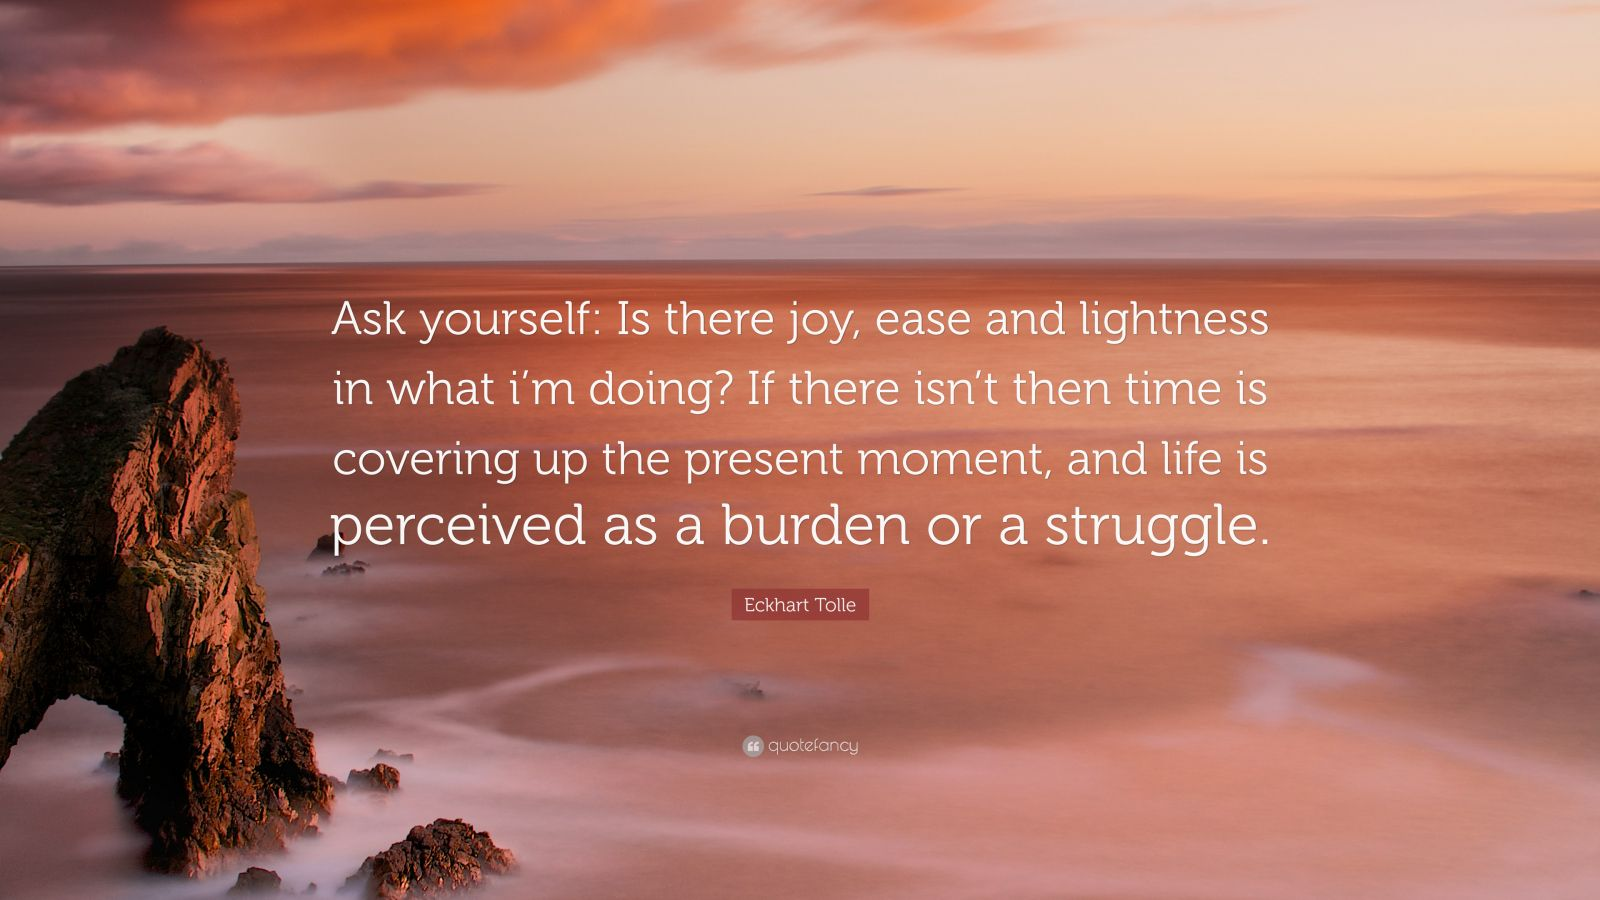 """Eckhart Tolle Quote: """"Ask yourself: Is there joy, ease and lightness in what i'm doing? If there isn't then time is covering up the present moment, and life is perceived as a burden or a struggle."""""""